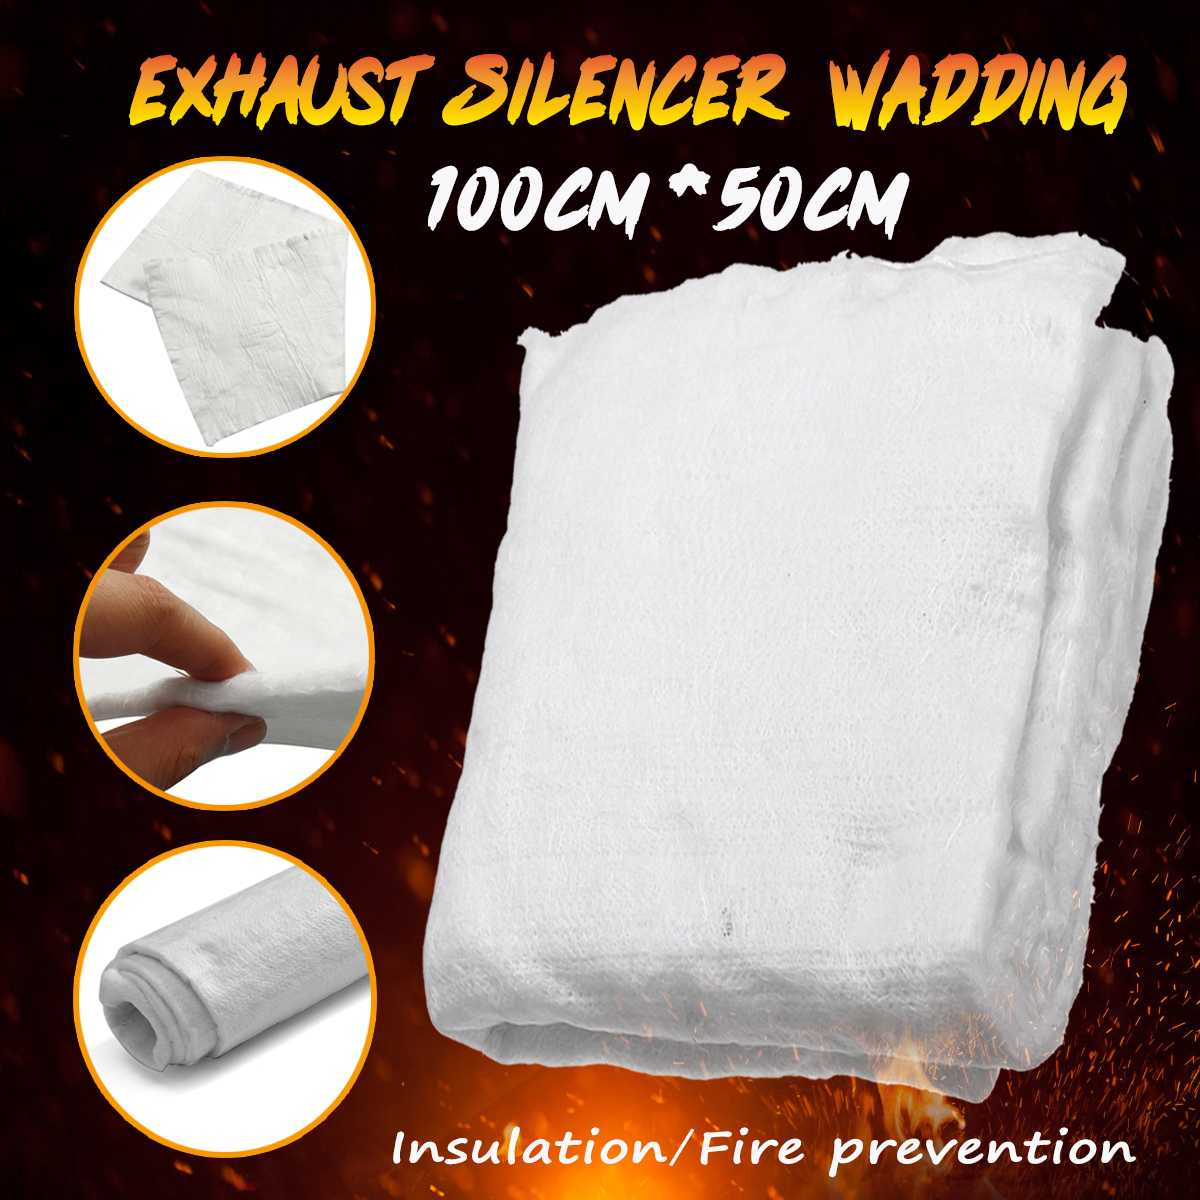 100cmx50cm Motorcycle Exhaust  Insulation Cotton Exhaust Silencer Wadding Sheet Insulation Cotton Blanket